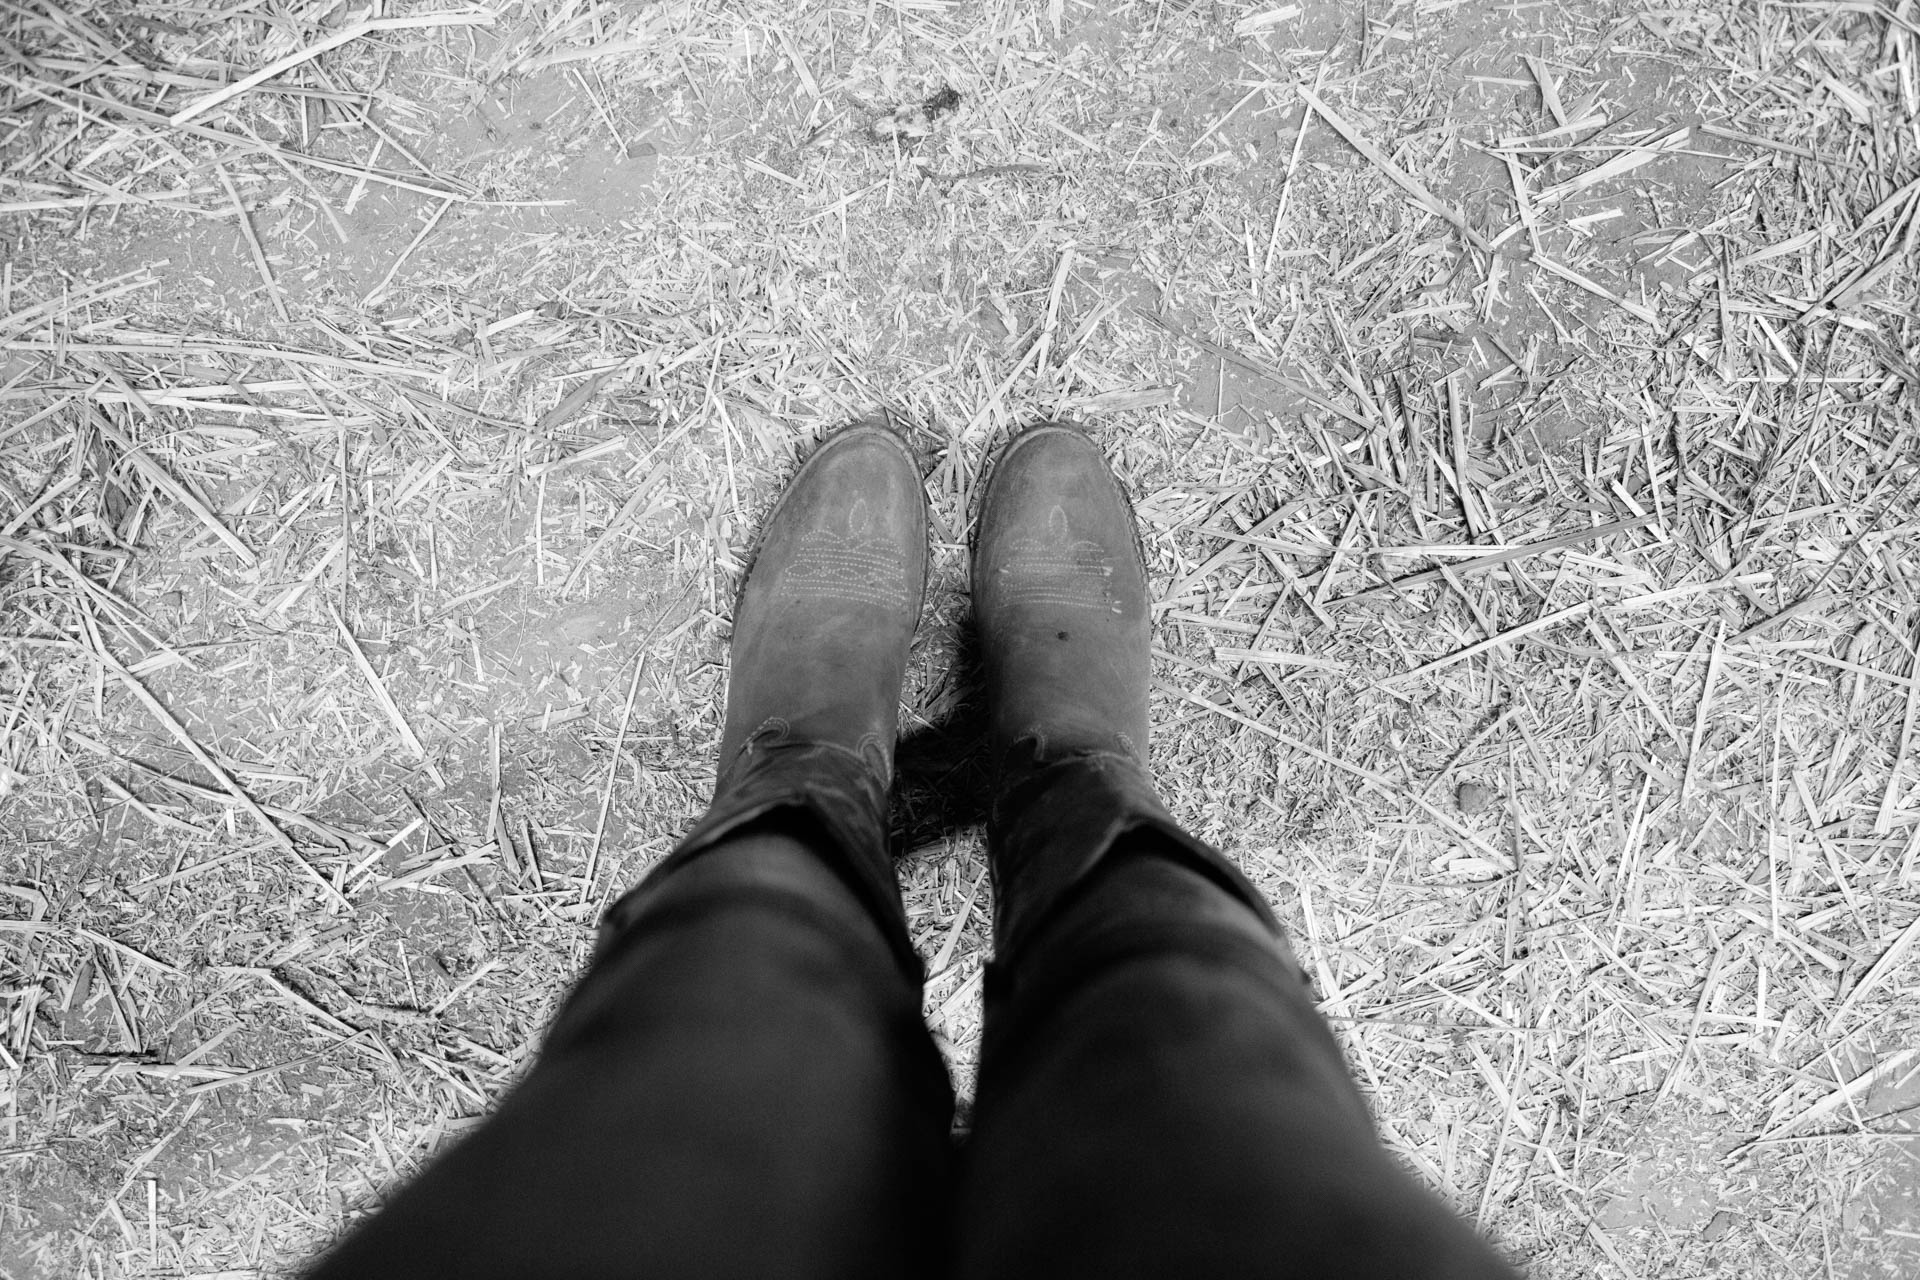 northern-wisconsin-state-fair-looking-down-at-her-cowboy-boots